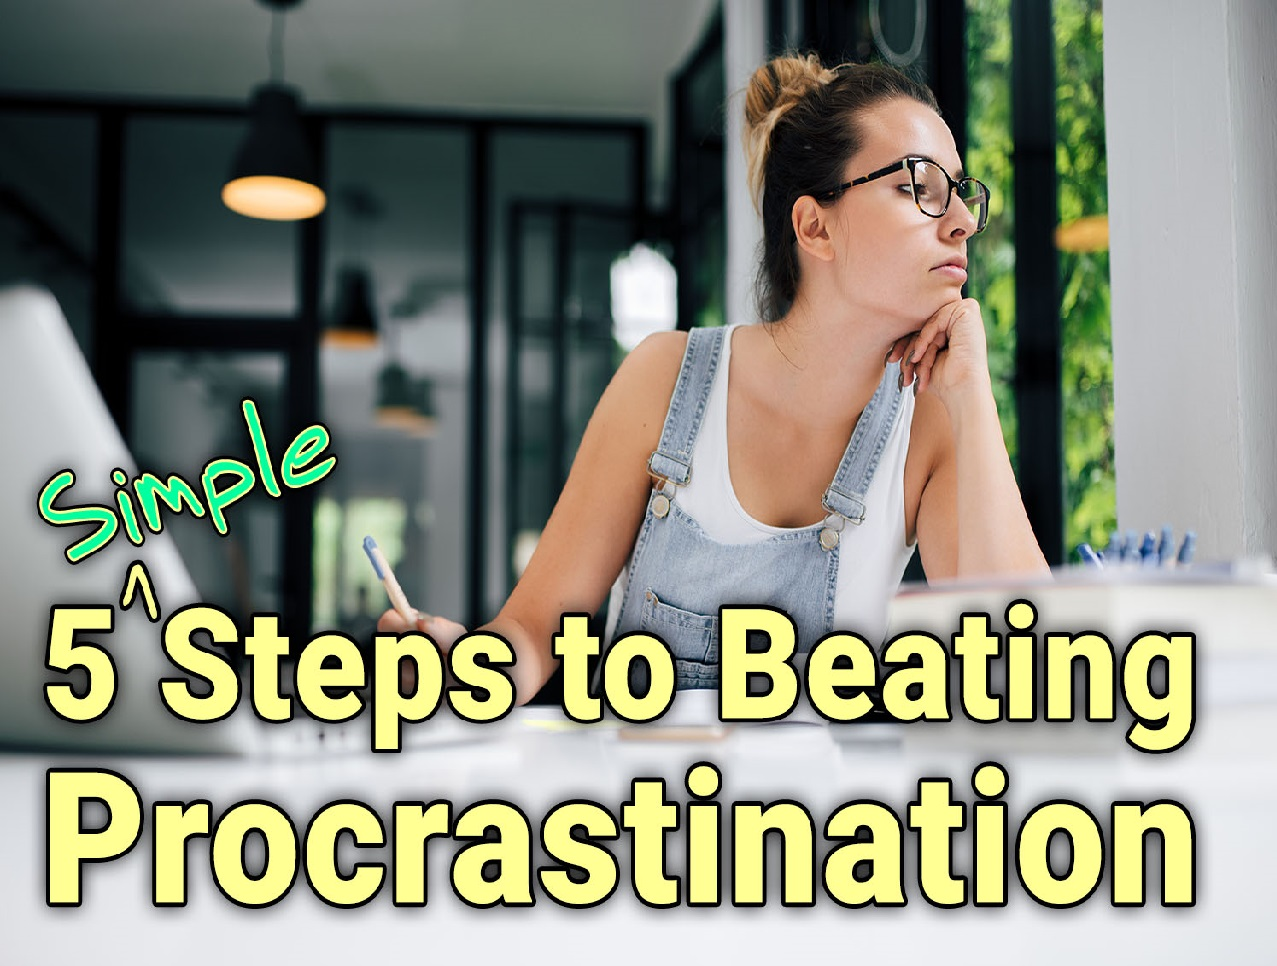 5 Simple Steps to Beating Procrastination